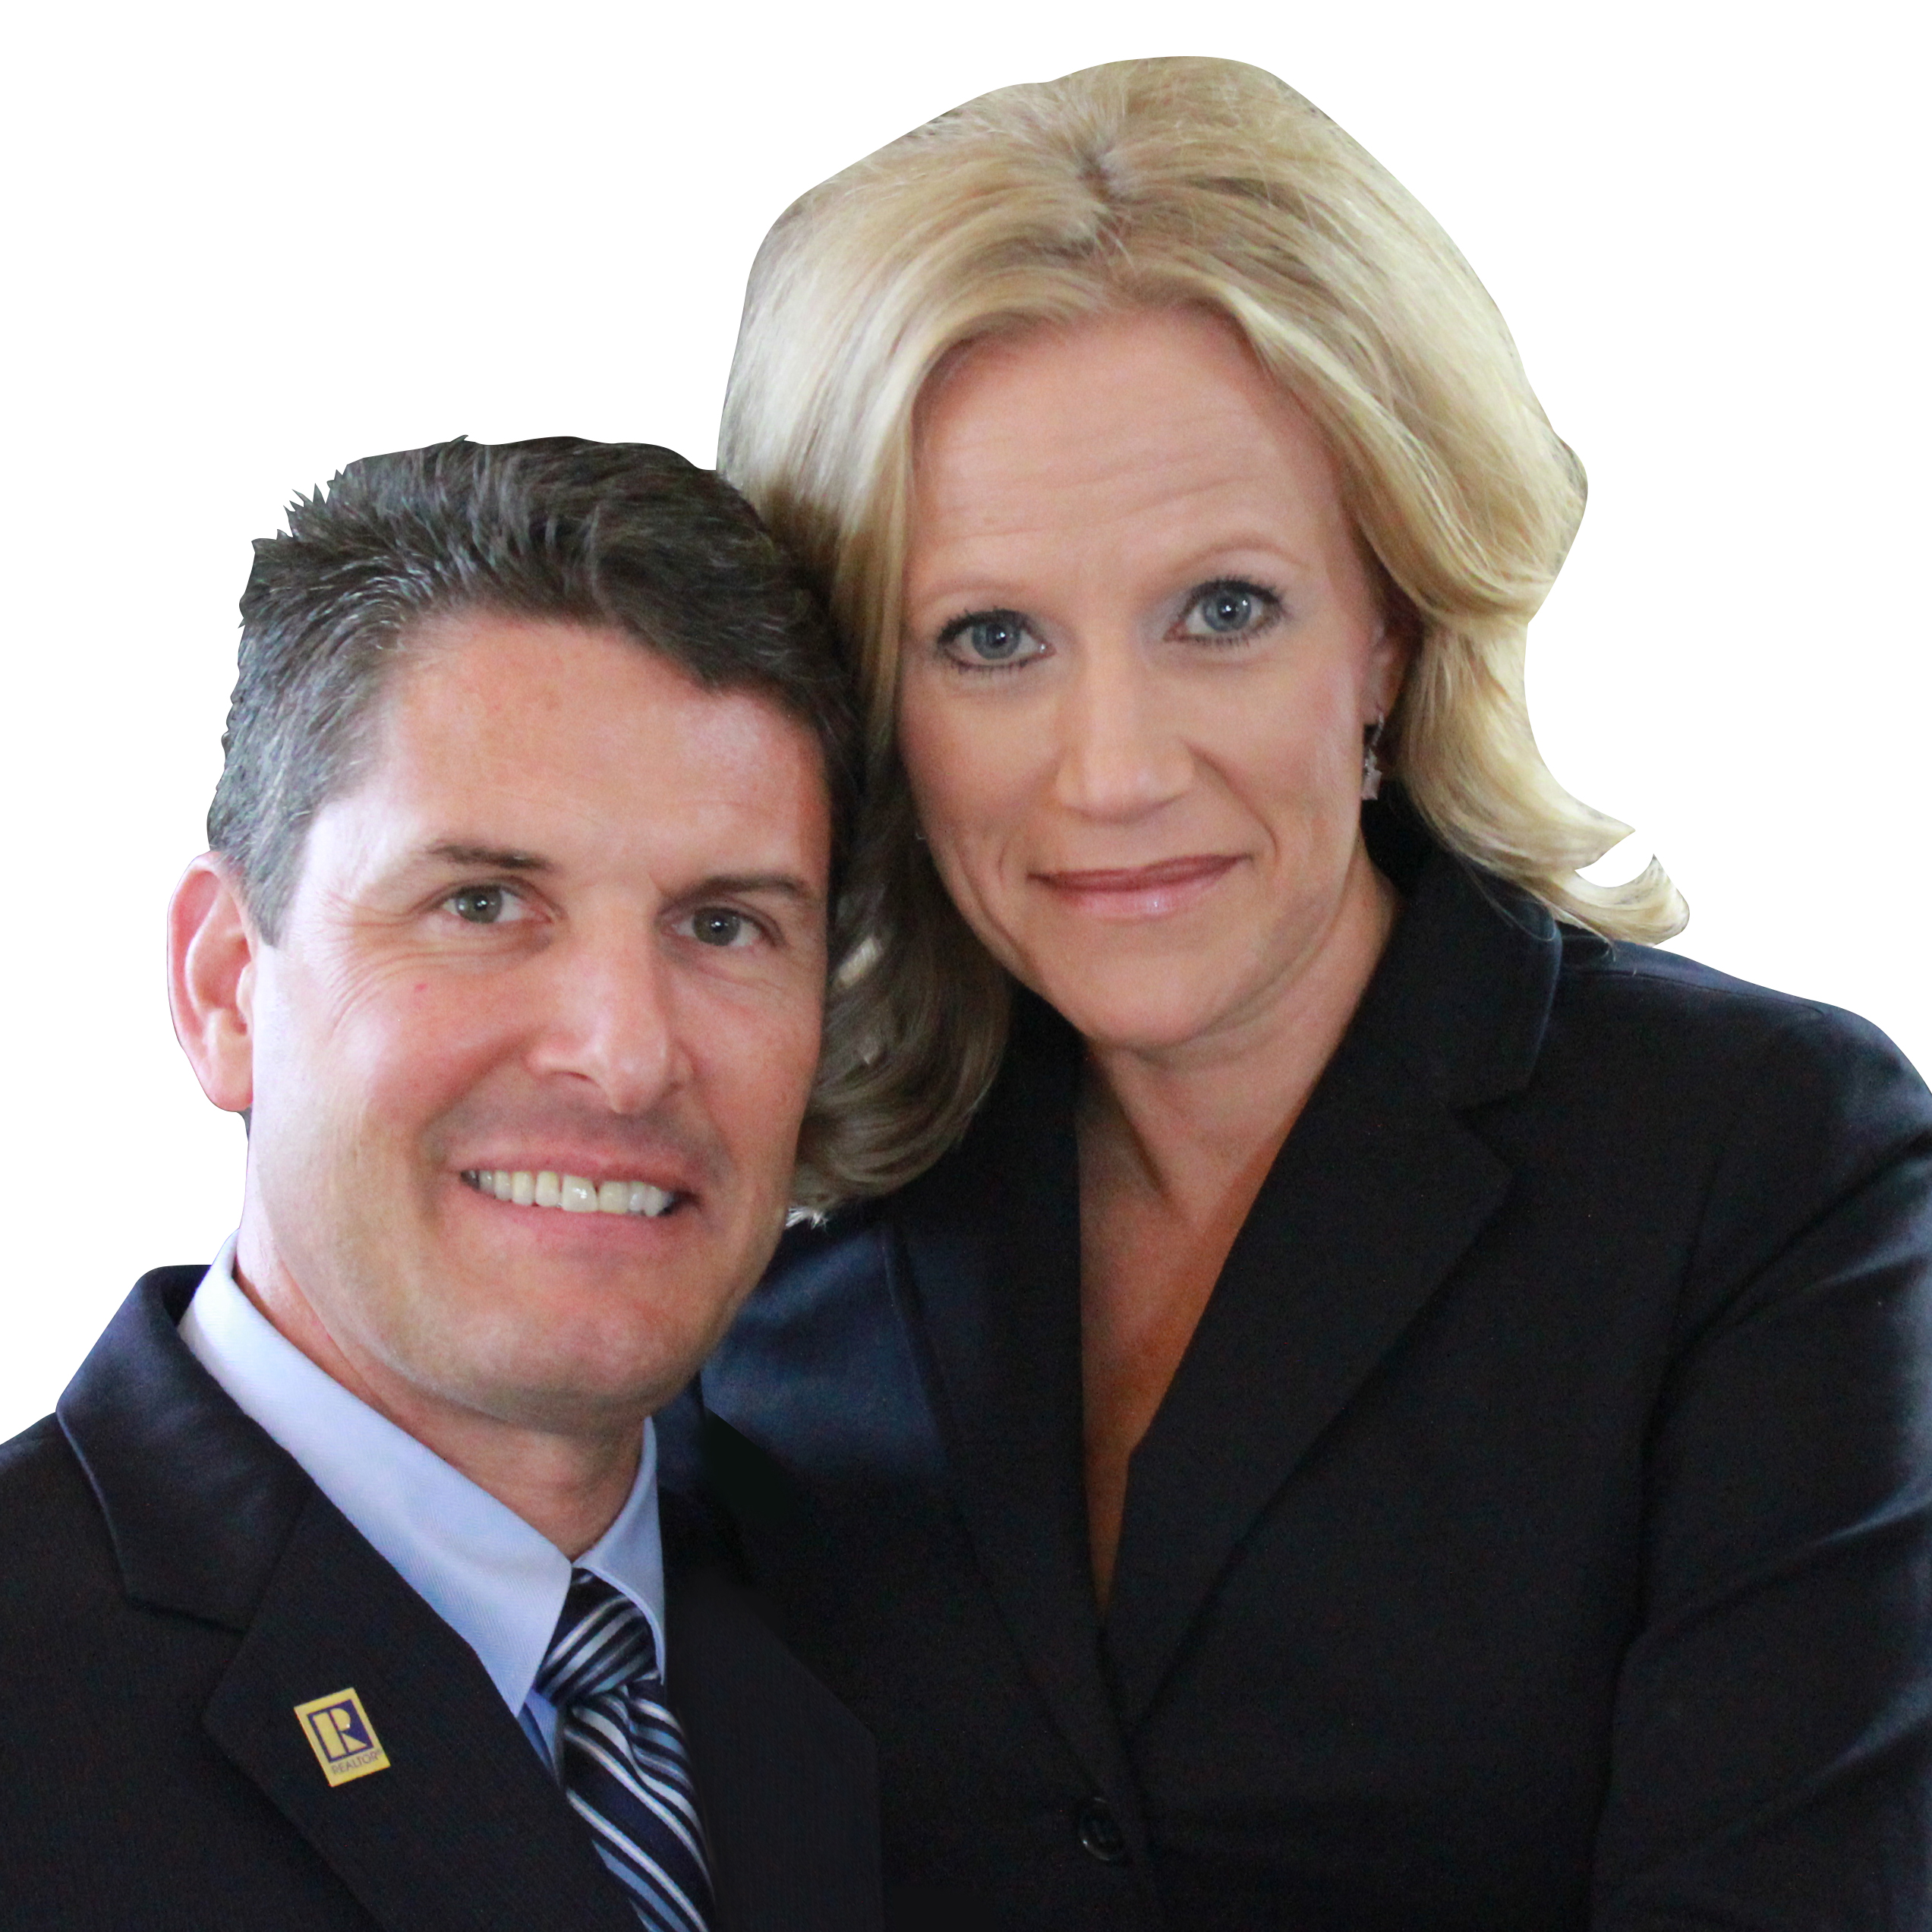 David and Tracy Schulz